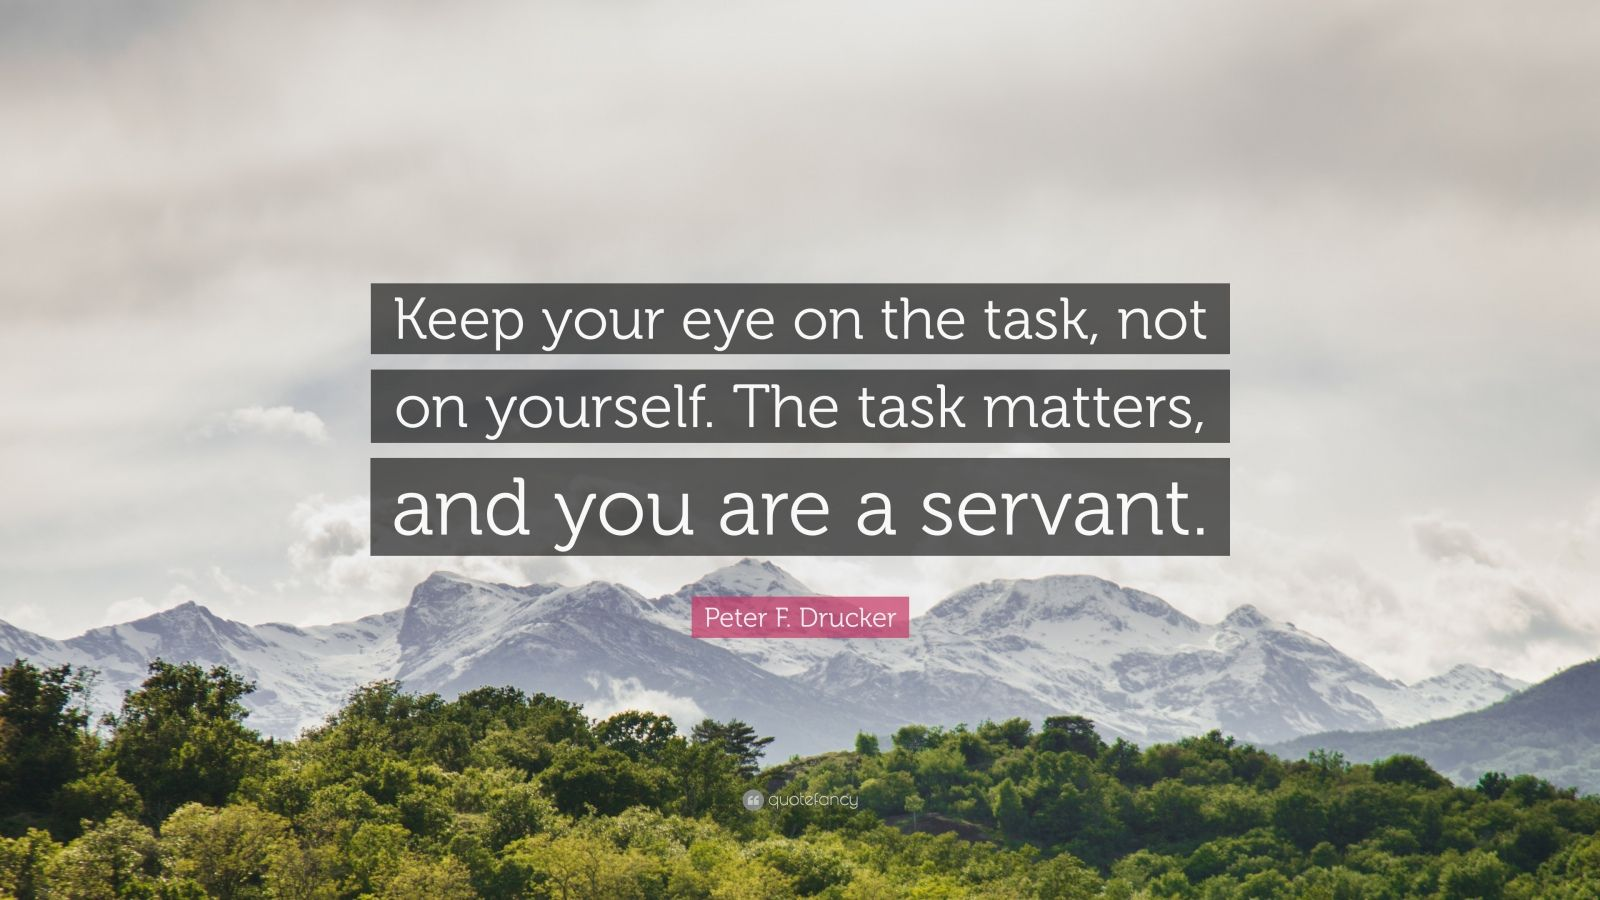 """Peter F. Drucker Quote: """"Keep your eye on the task, not on yourself. The task matters, and you are a servant."""""""